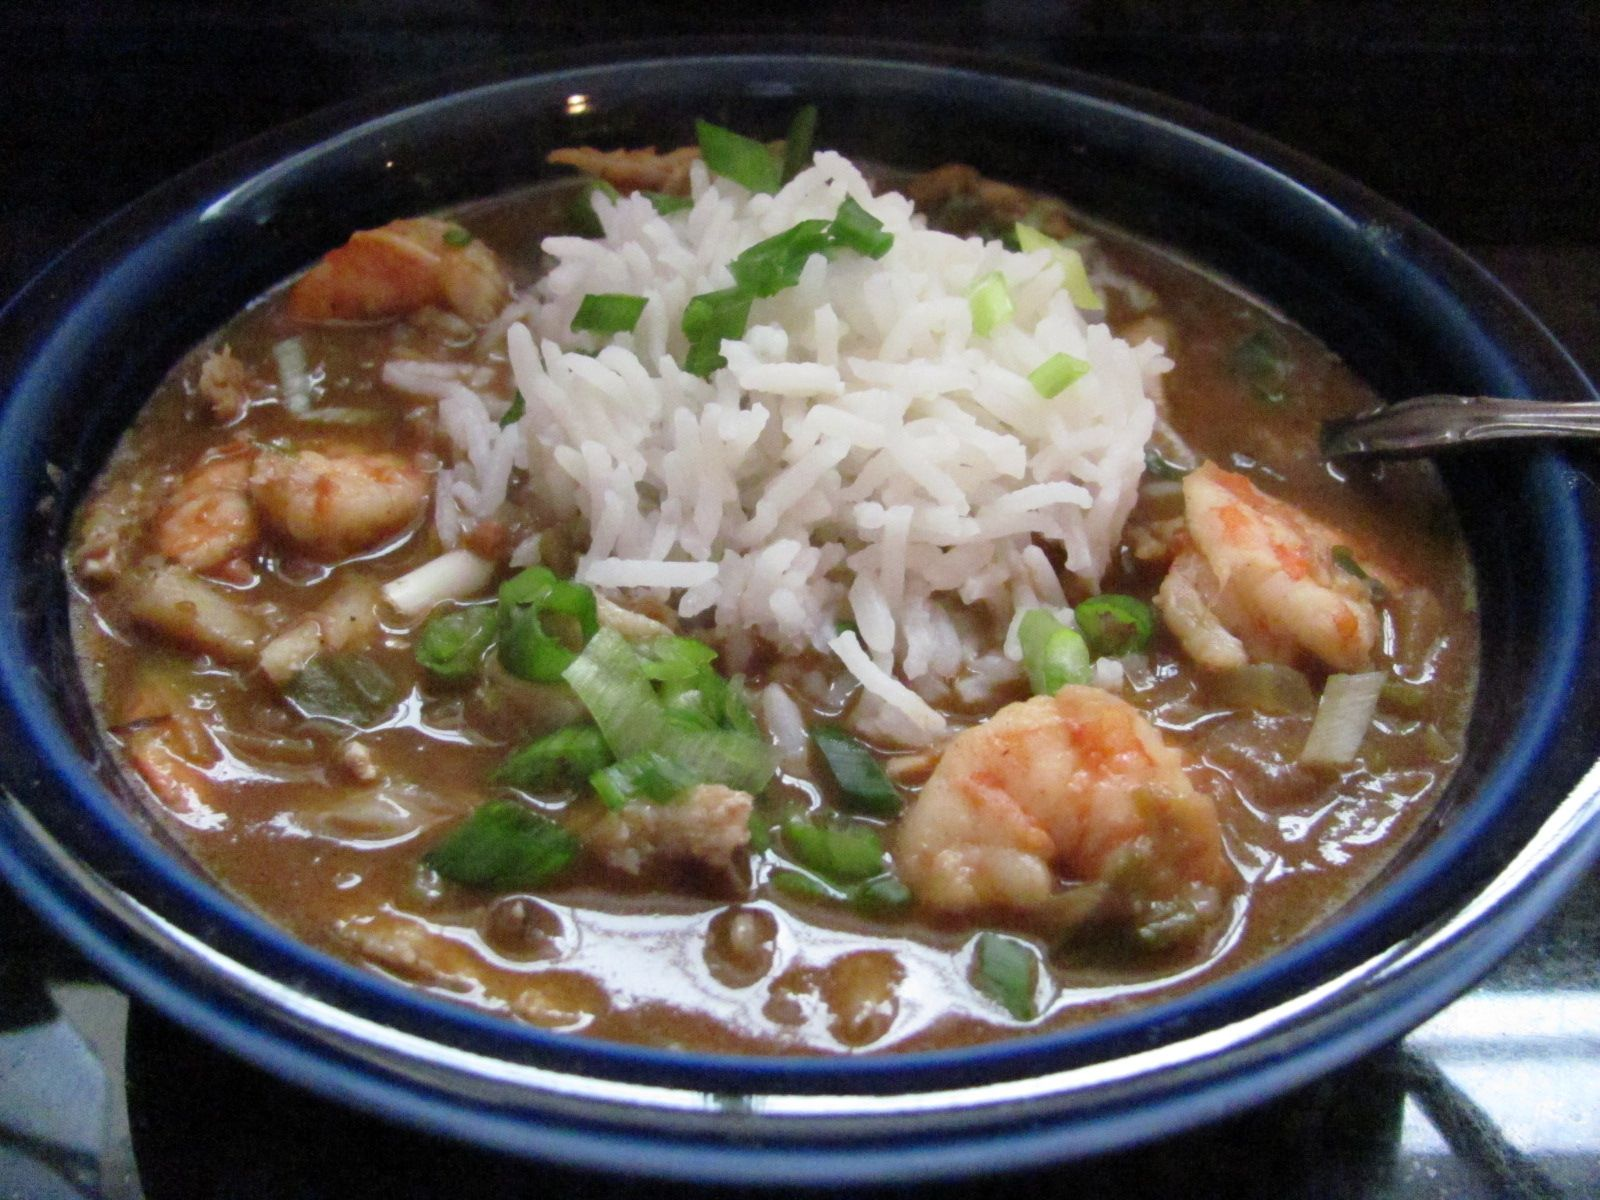 13+ Soup kitchen new orleans ideas in 2021